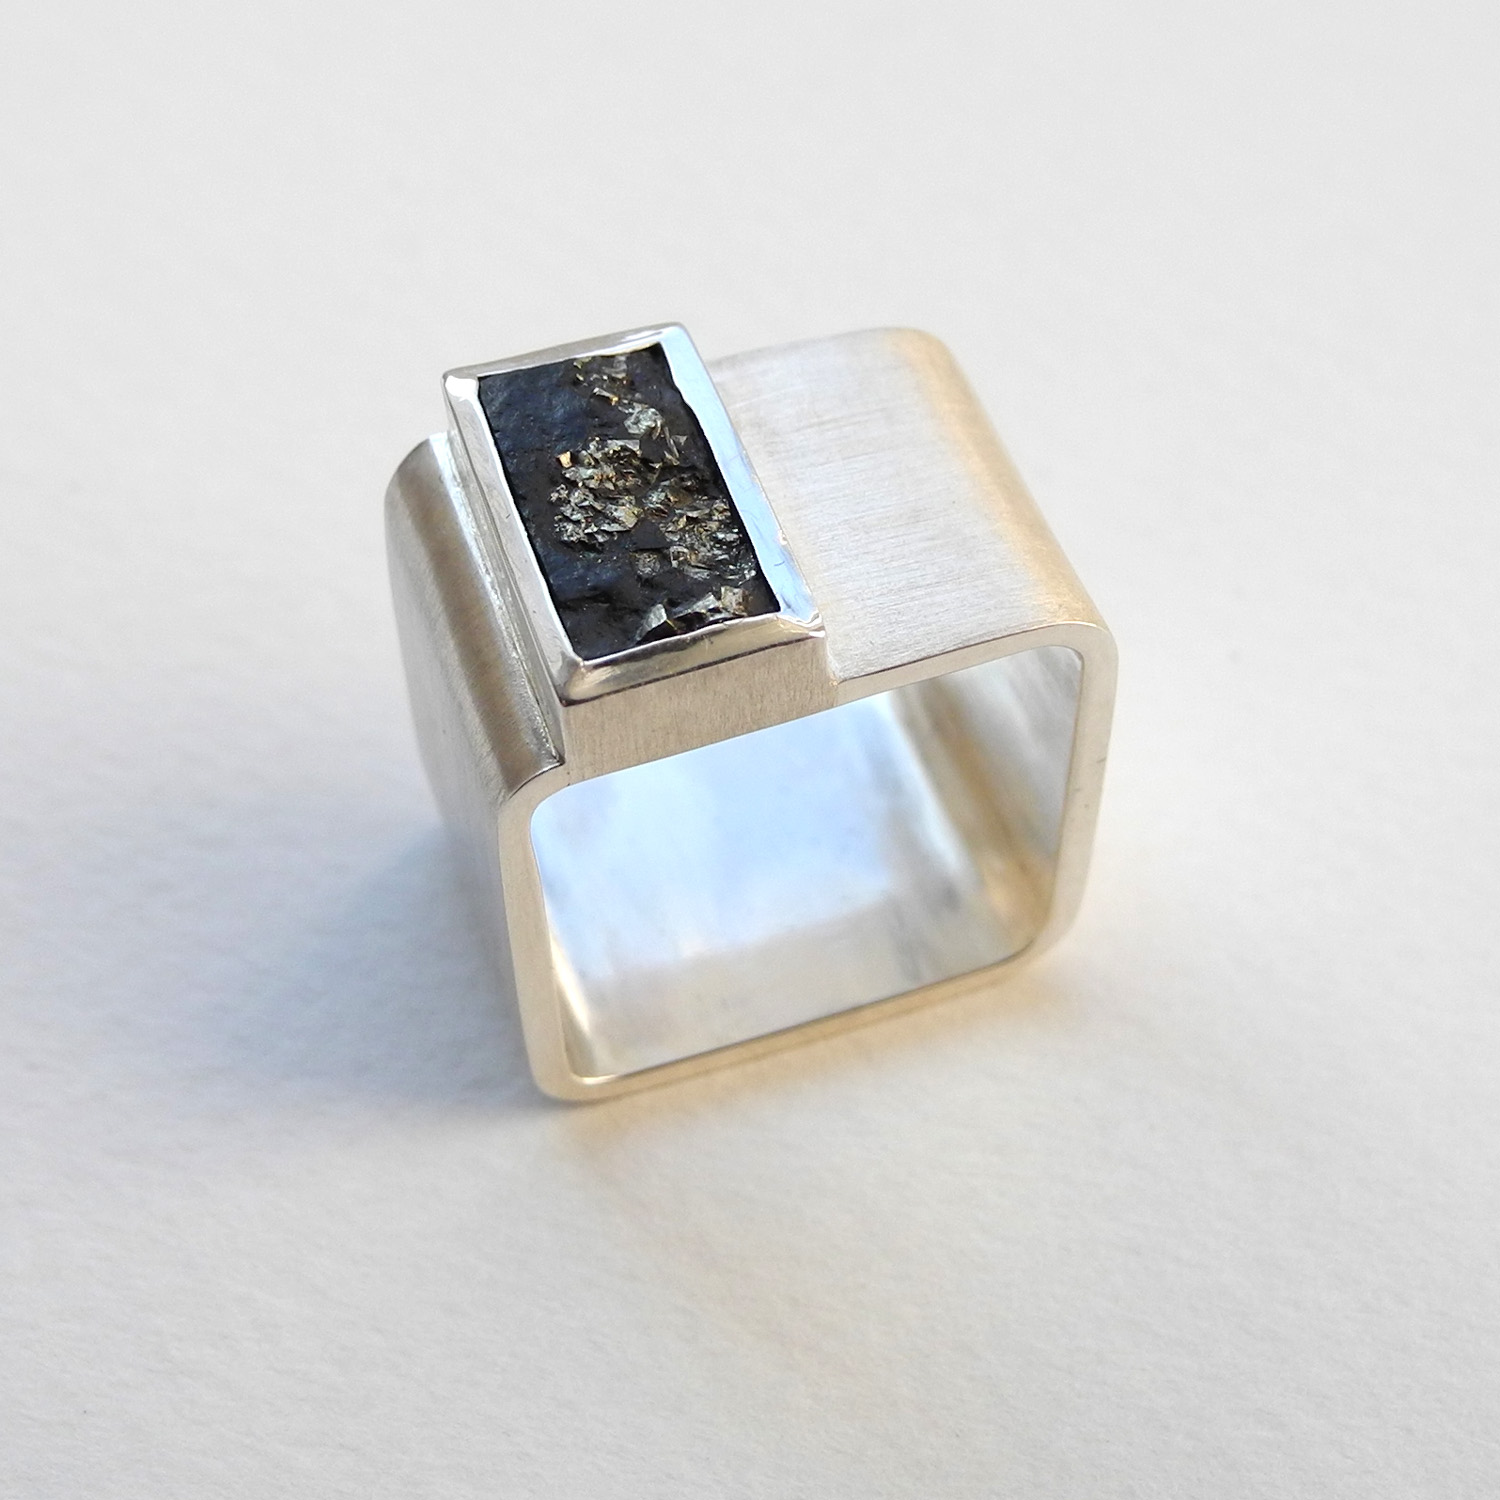 Herrenring Sterlingsilber Schiefer